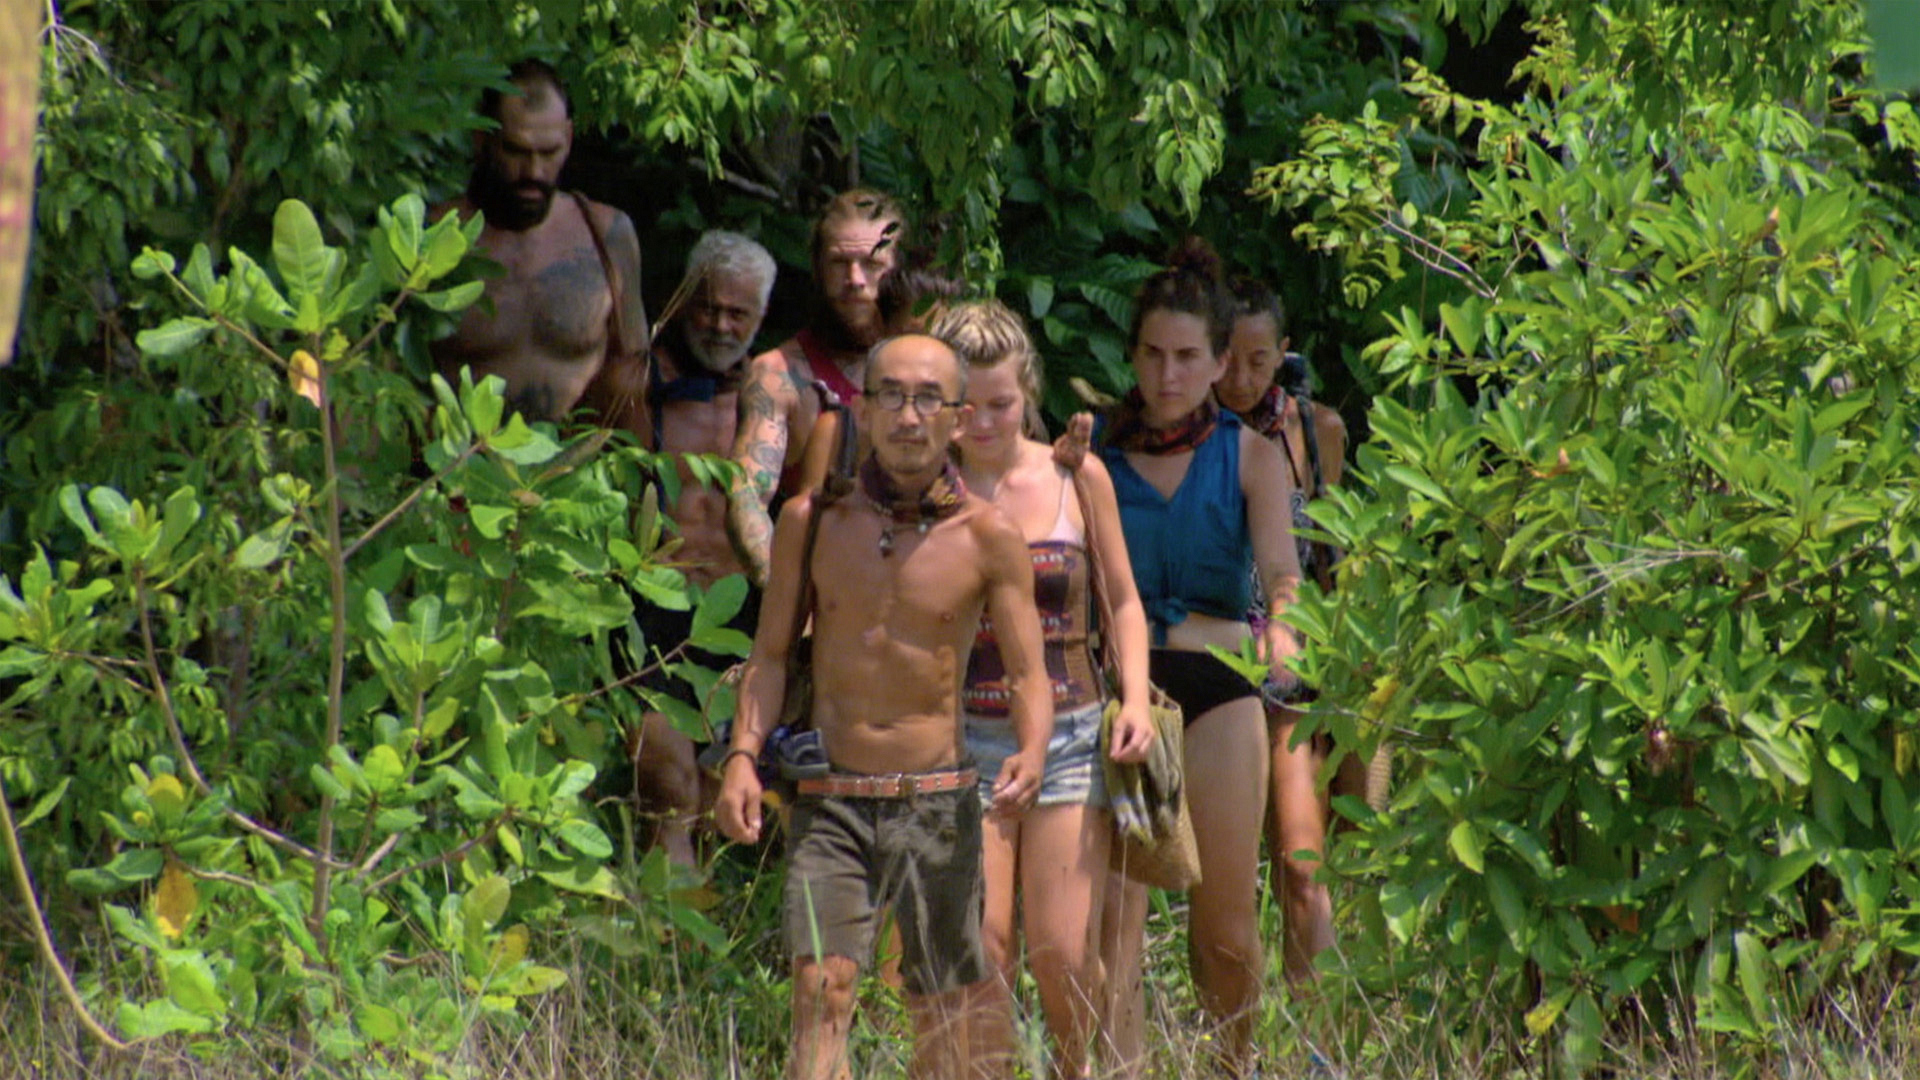 Who will end up winning Individual Immunity?